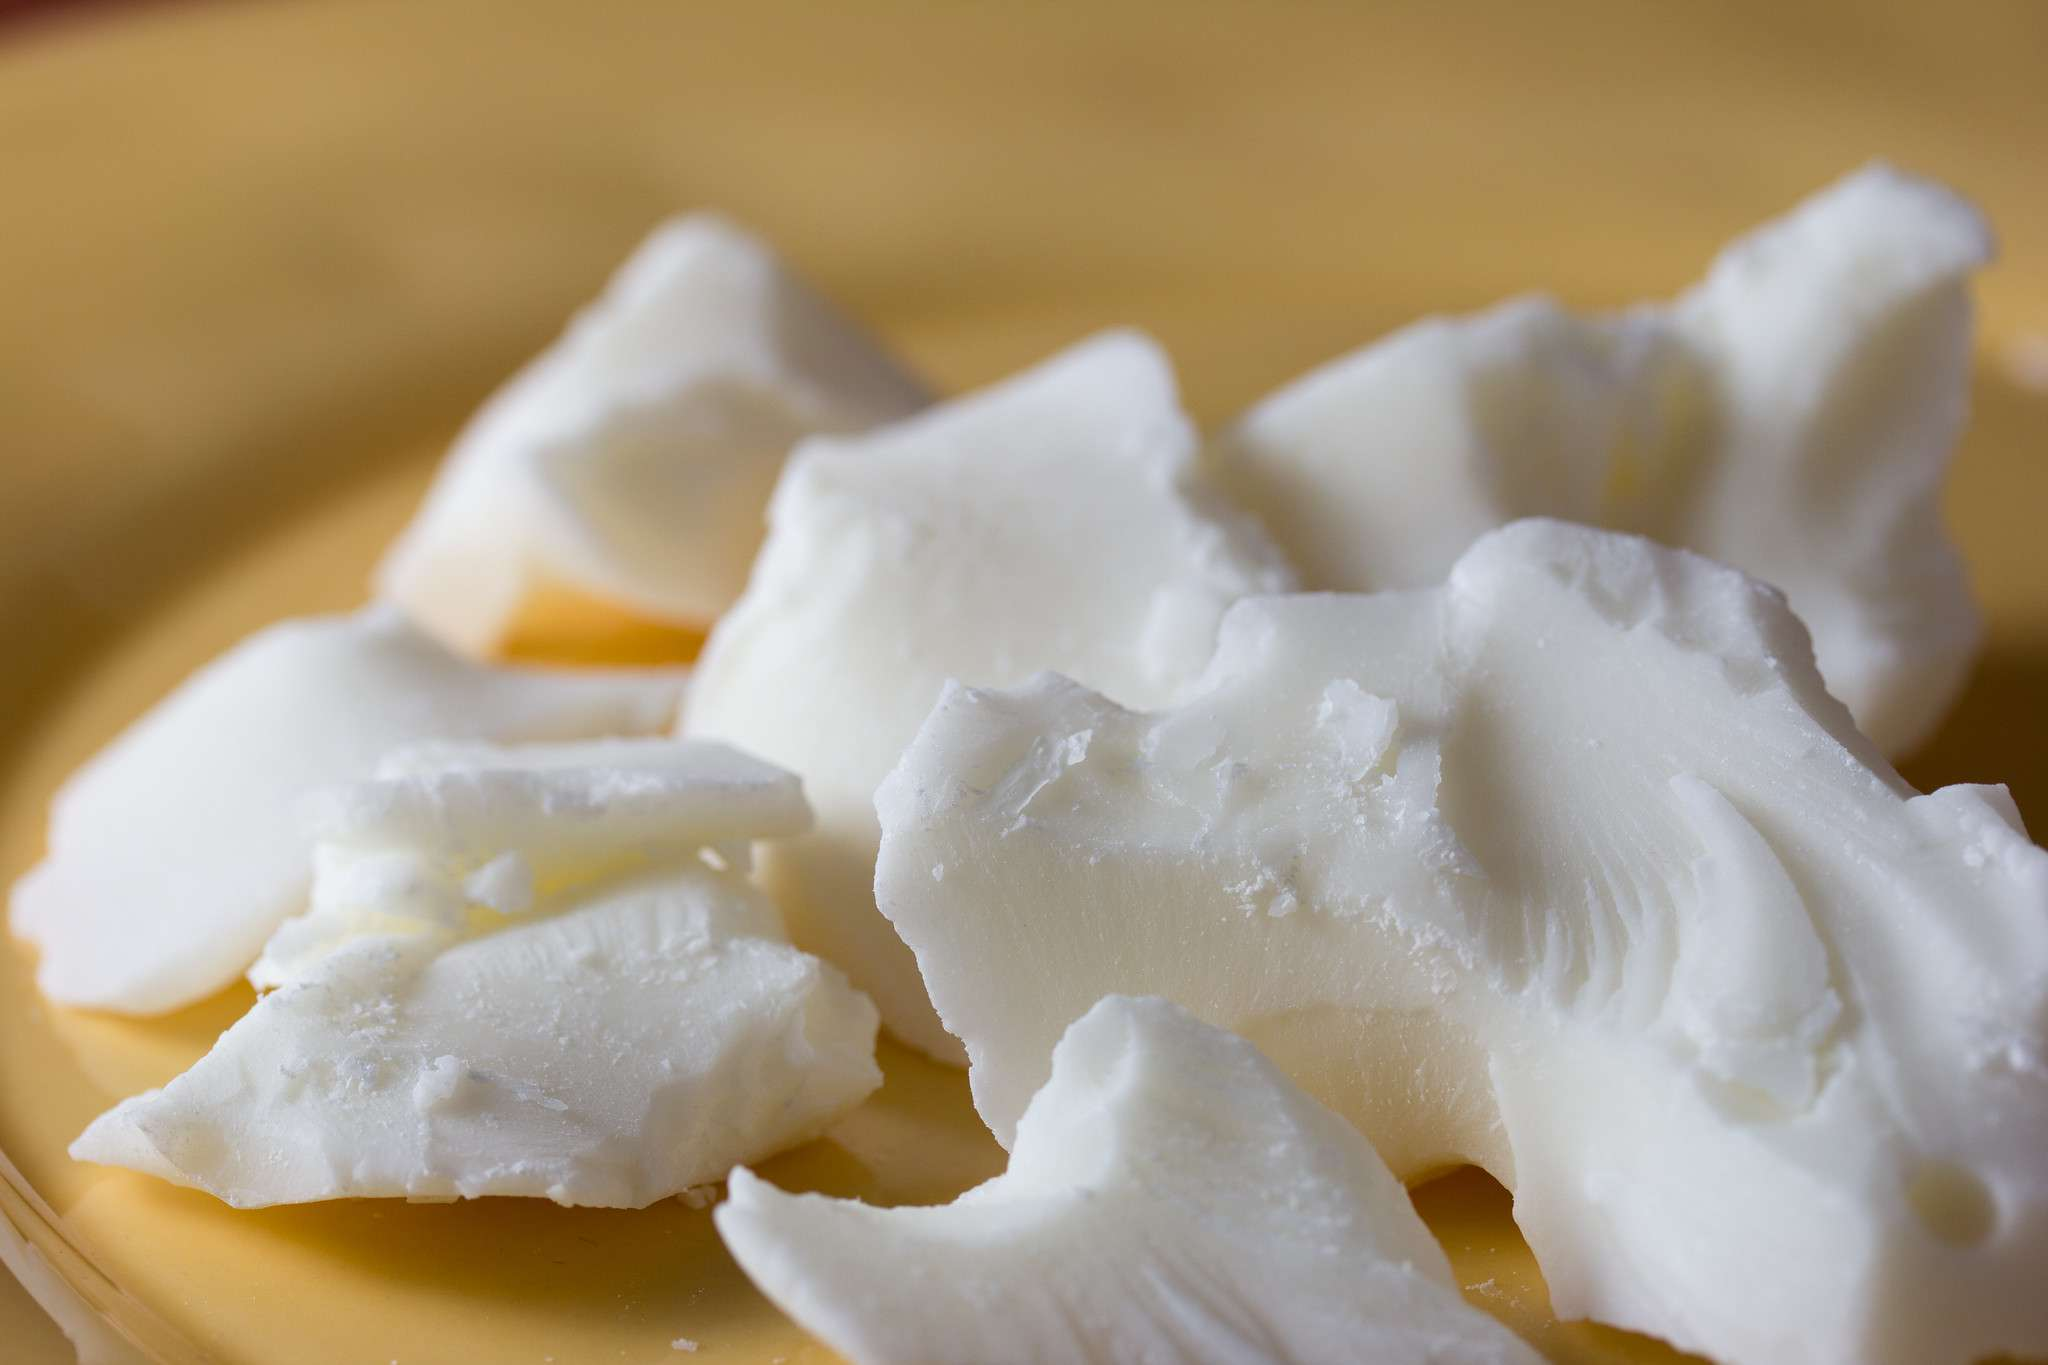 raw chunks of white cocoa butter up close on yellow plate